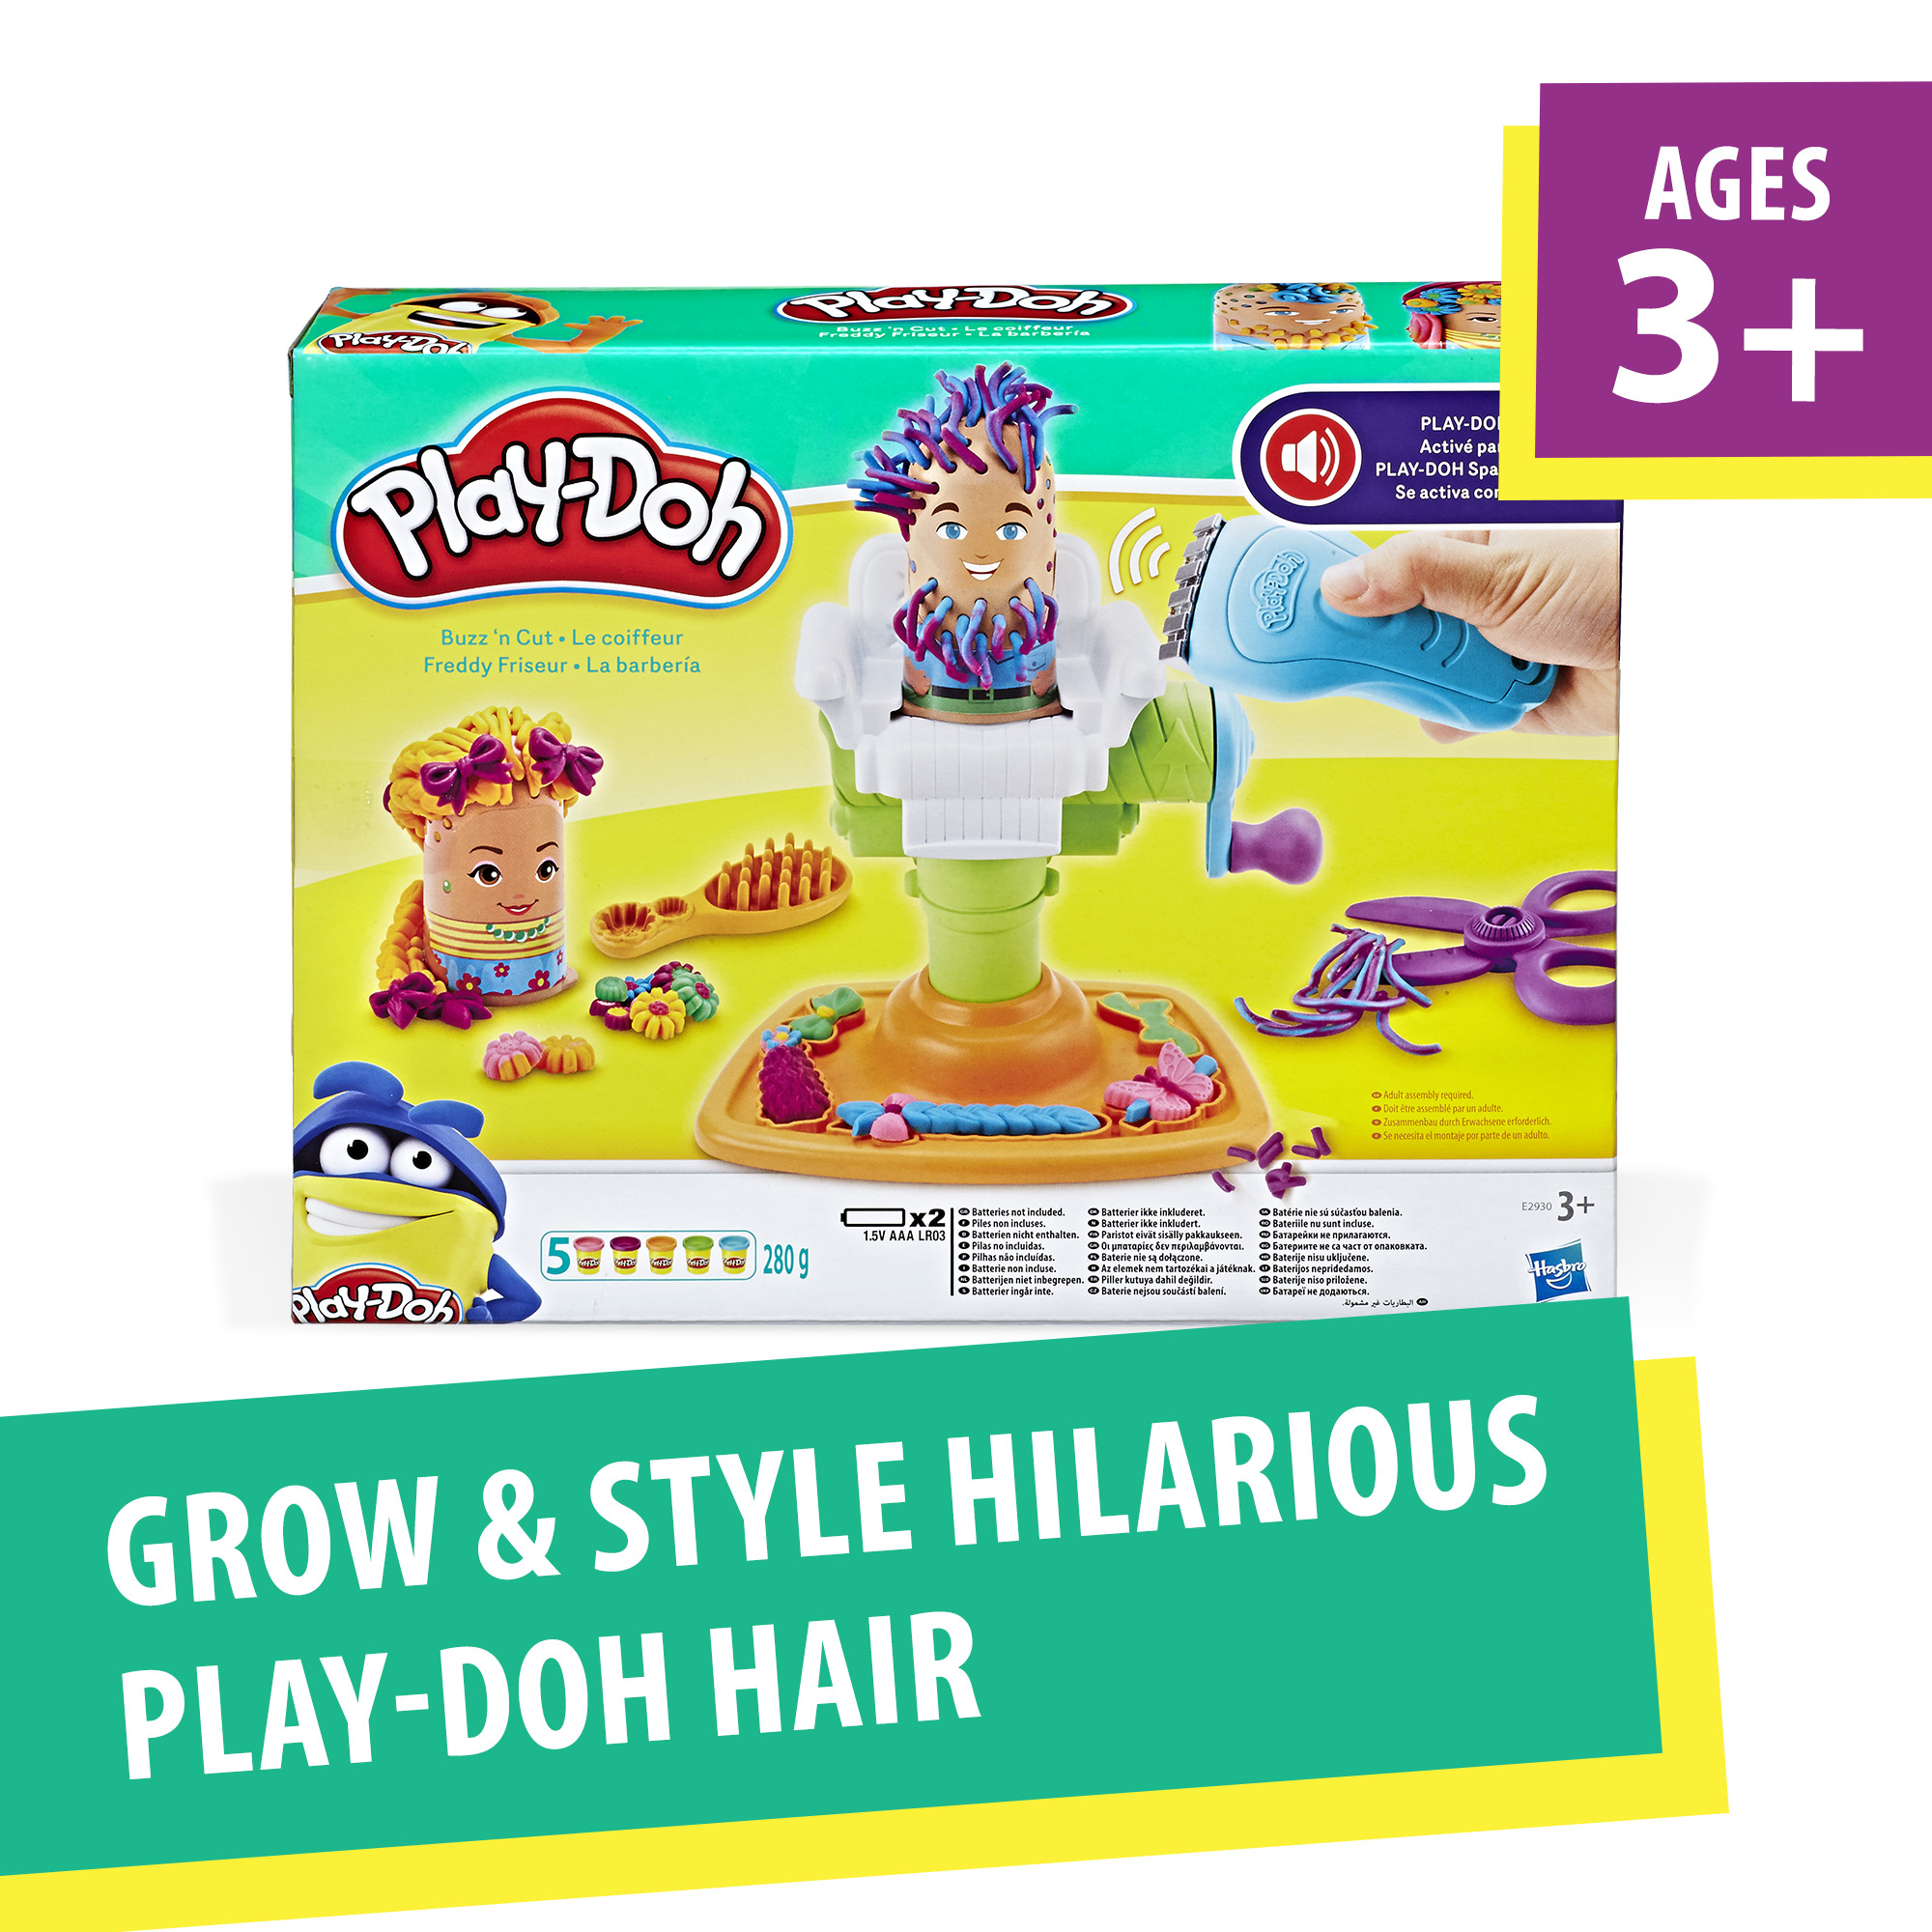 Play-doh buzz 'n cut fuzzy pumper barber shop toy with electric buzzer